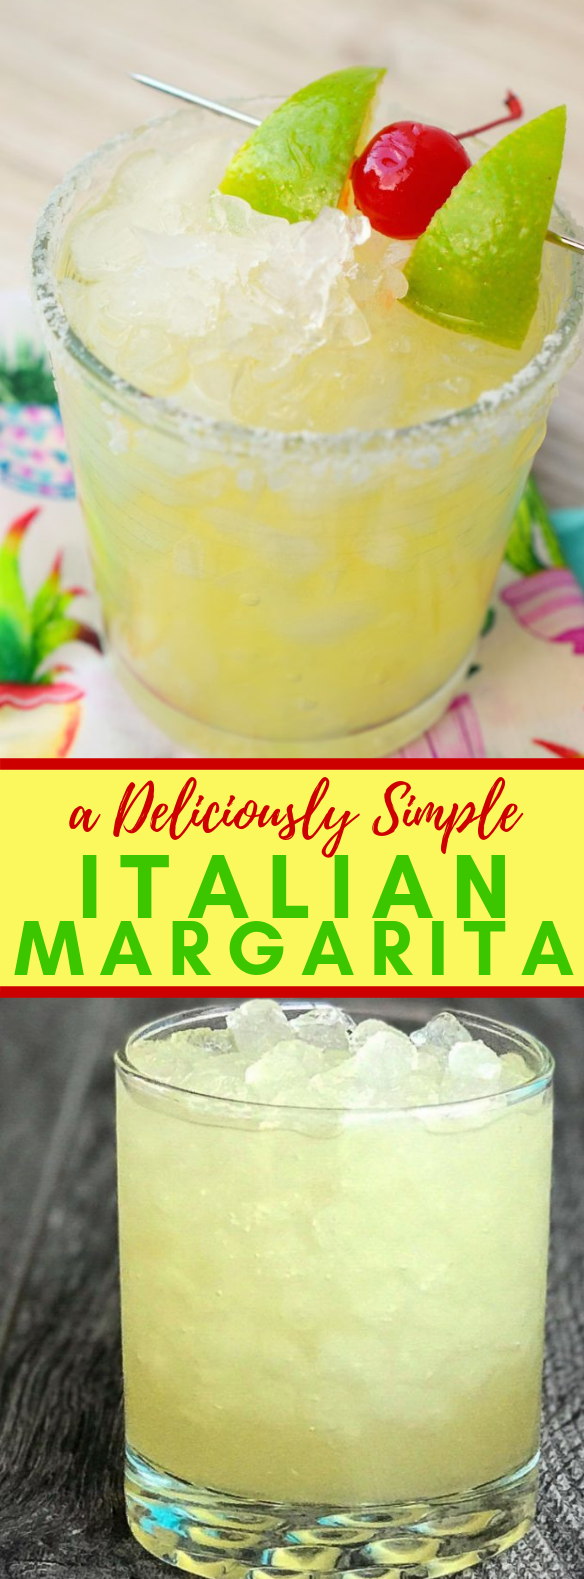 THE BEST ITALIAN MARGARITA YOU'VE EVER TASTED #drink #cocktail